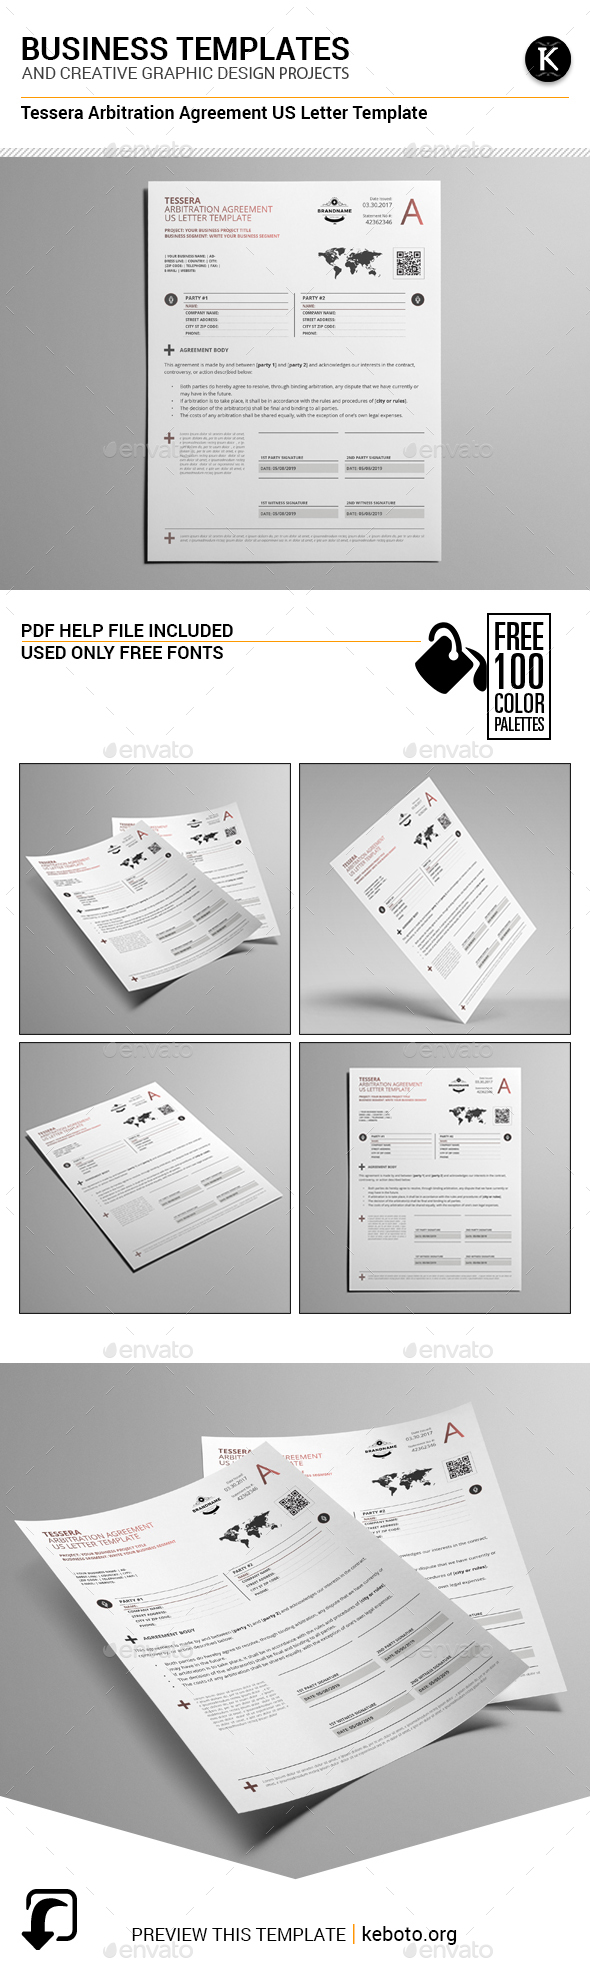 Tessera Arbitration Agreement US Letter Template - Miscellaneous Print Templates